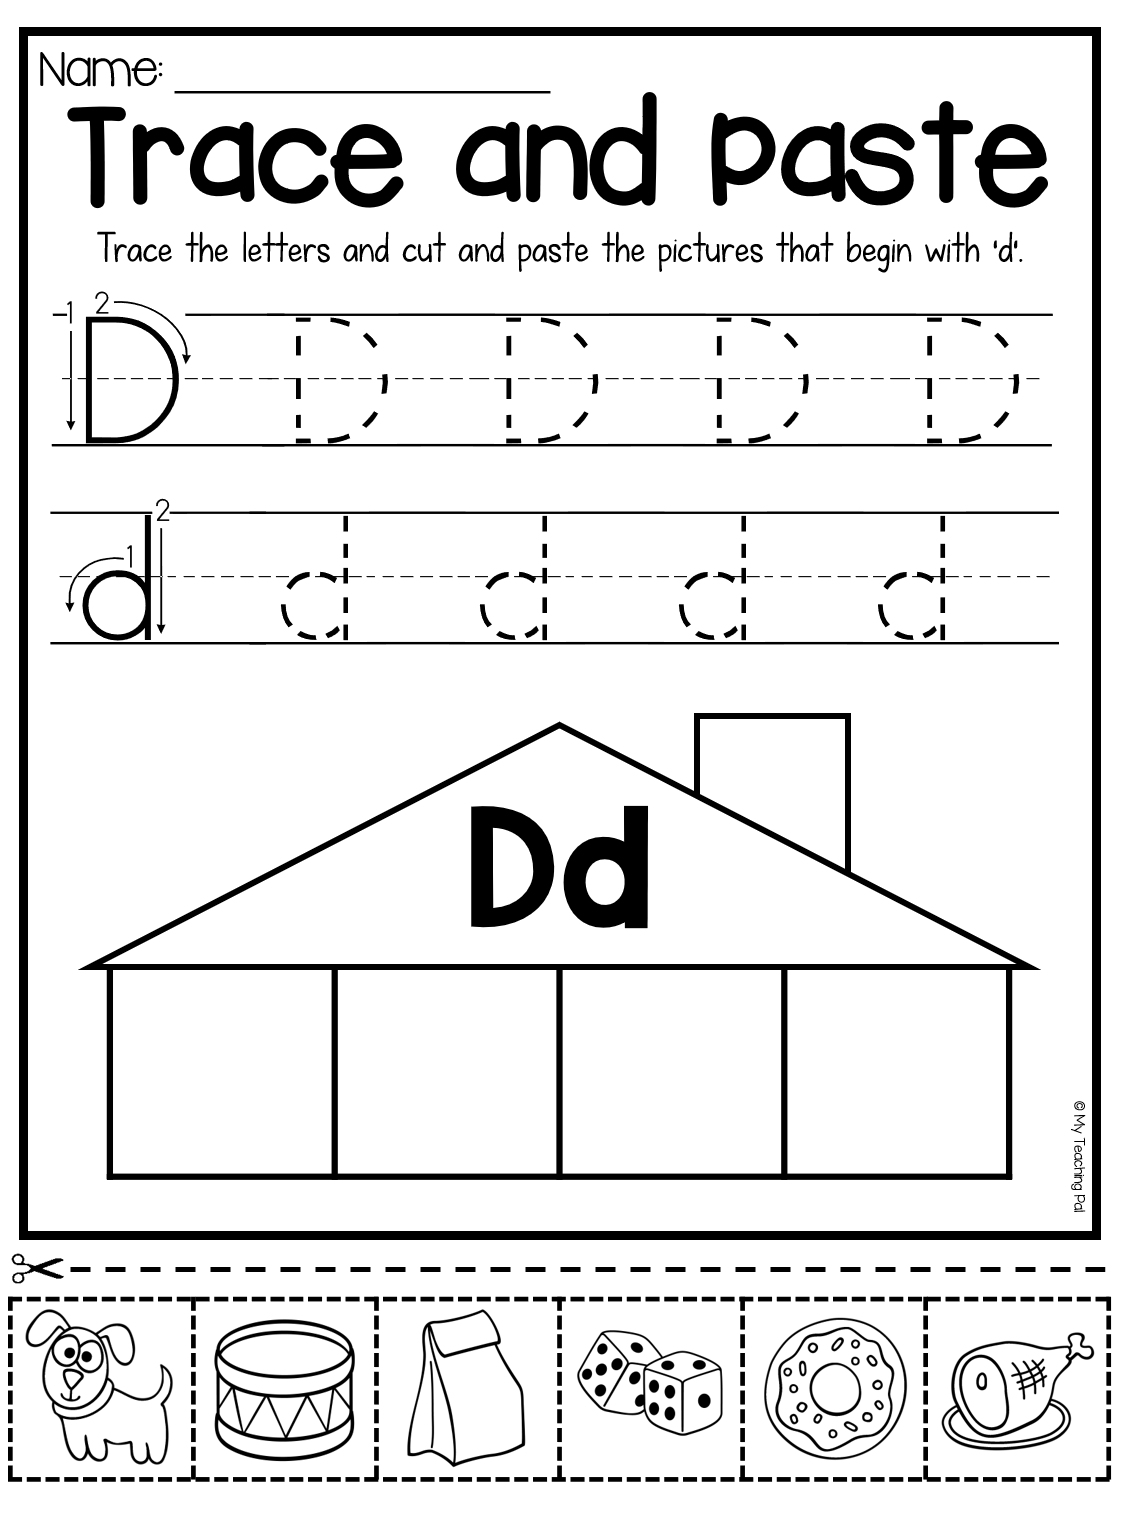 worksheet Cut And Paste Beginning Sounds Worksheets beginning sounds worksheets trace and paste alphabet paste